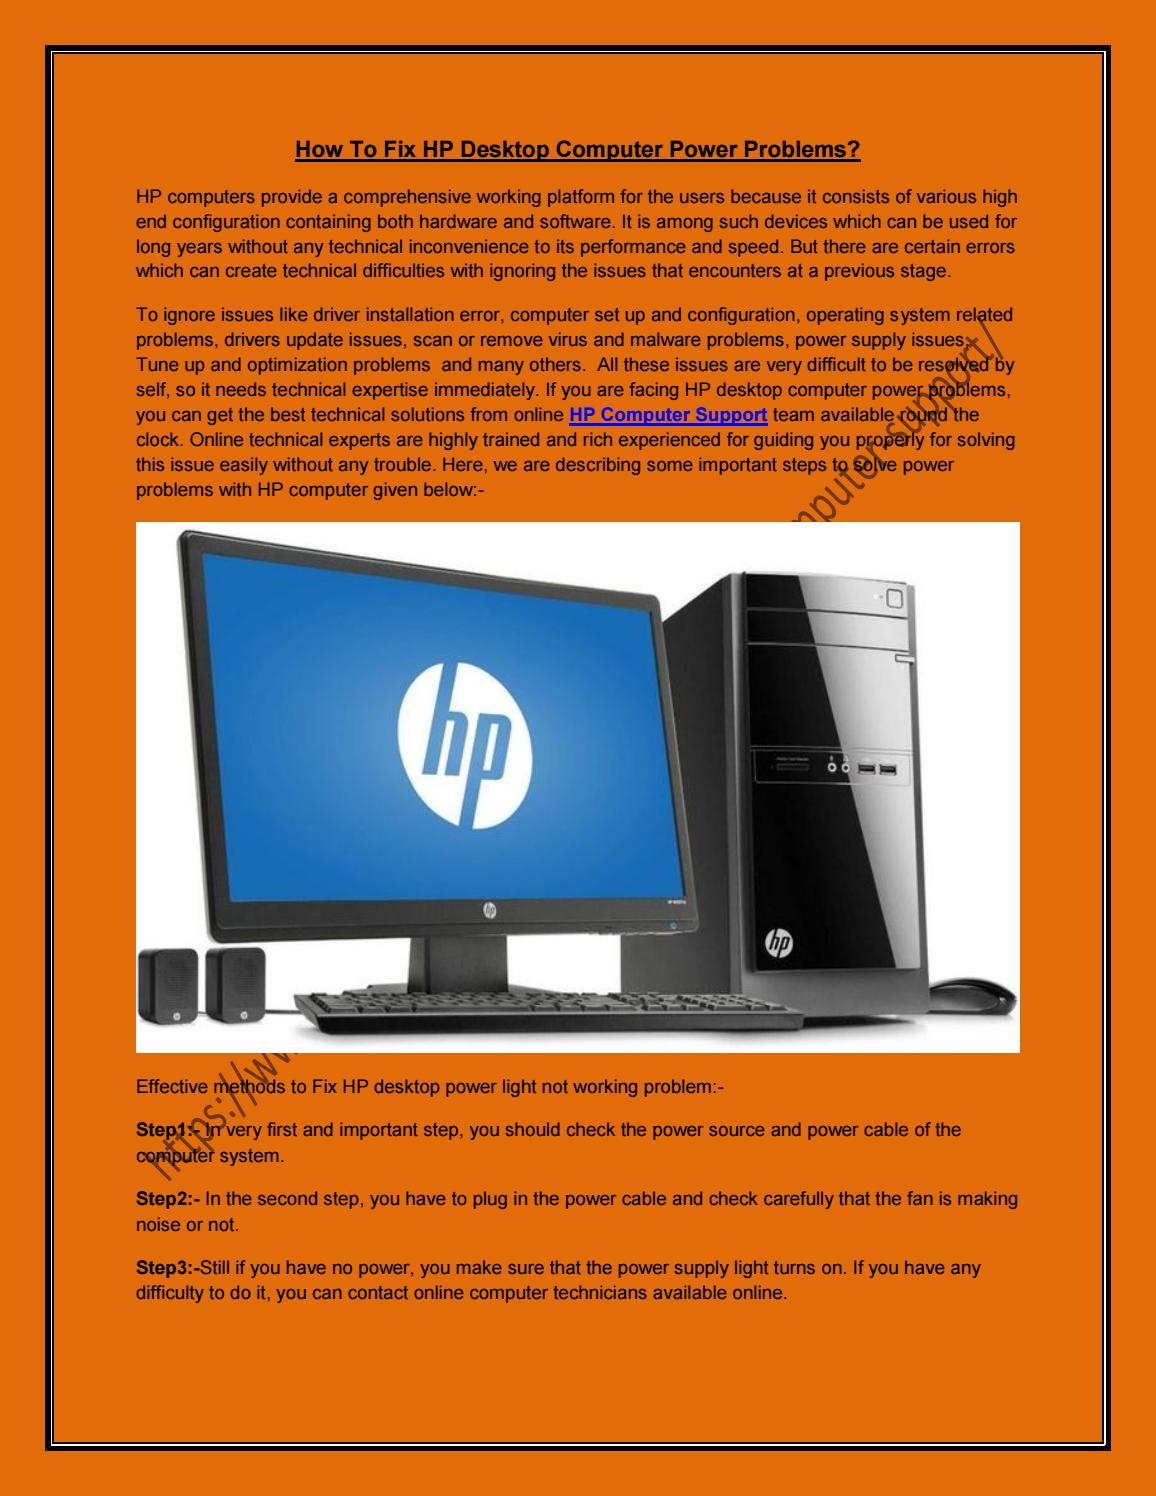 How to fix hp desktop computer power problems docx by Tony Roy - issuu